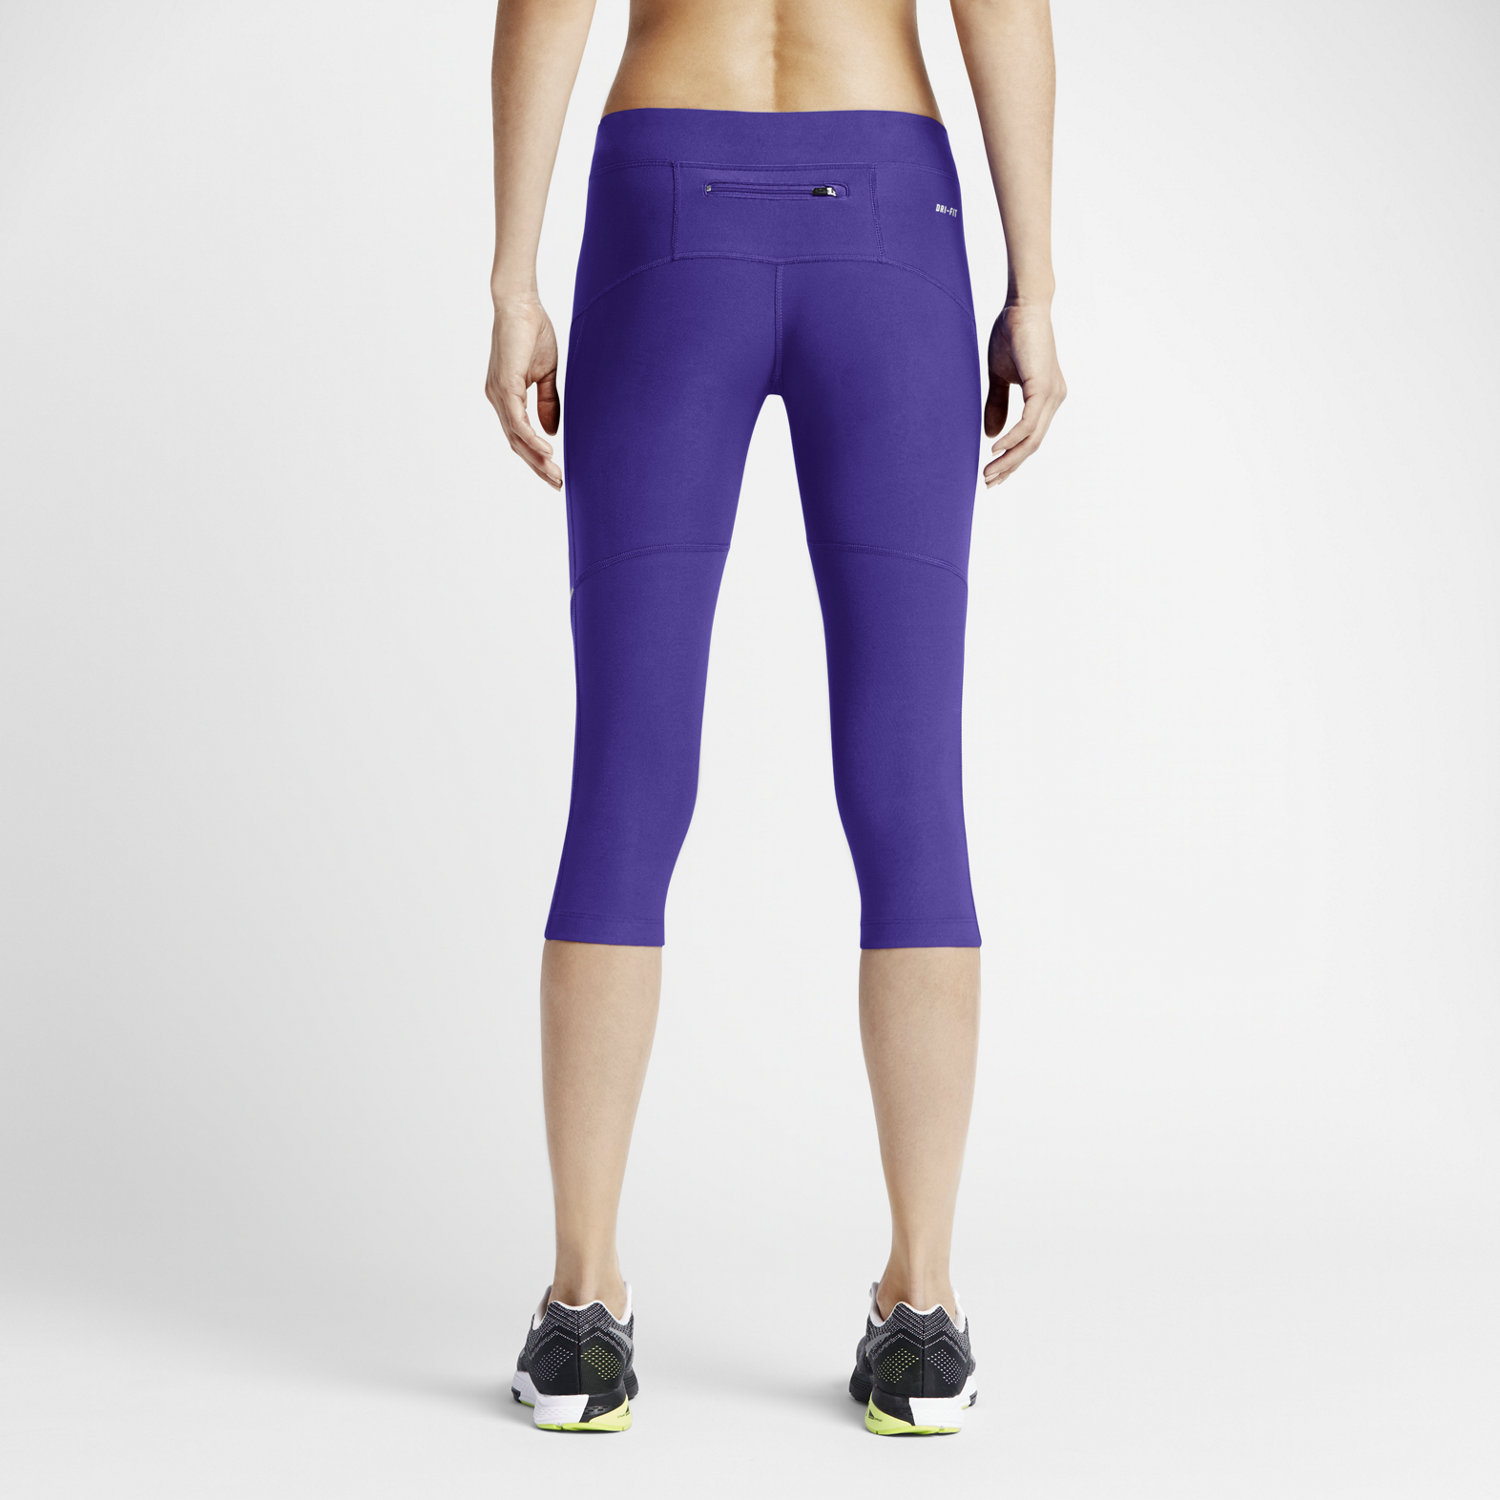 ladies capri sports pants - Pi Pants